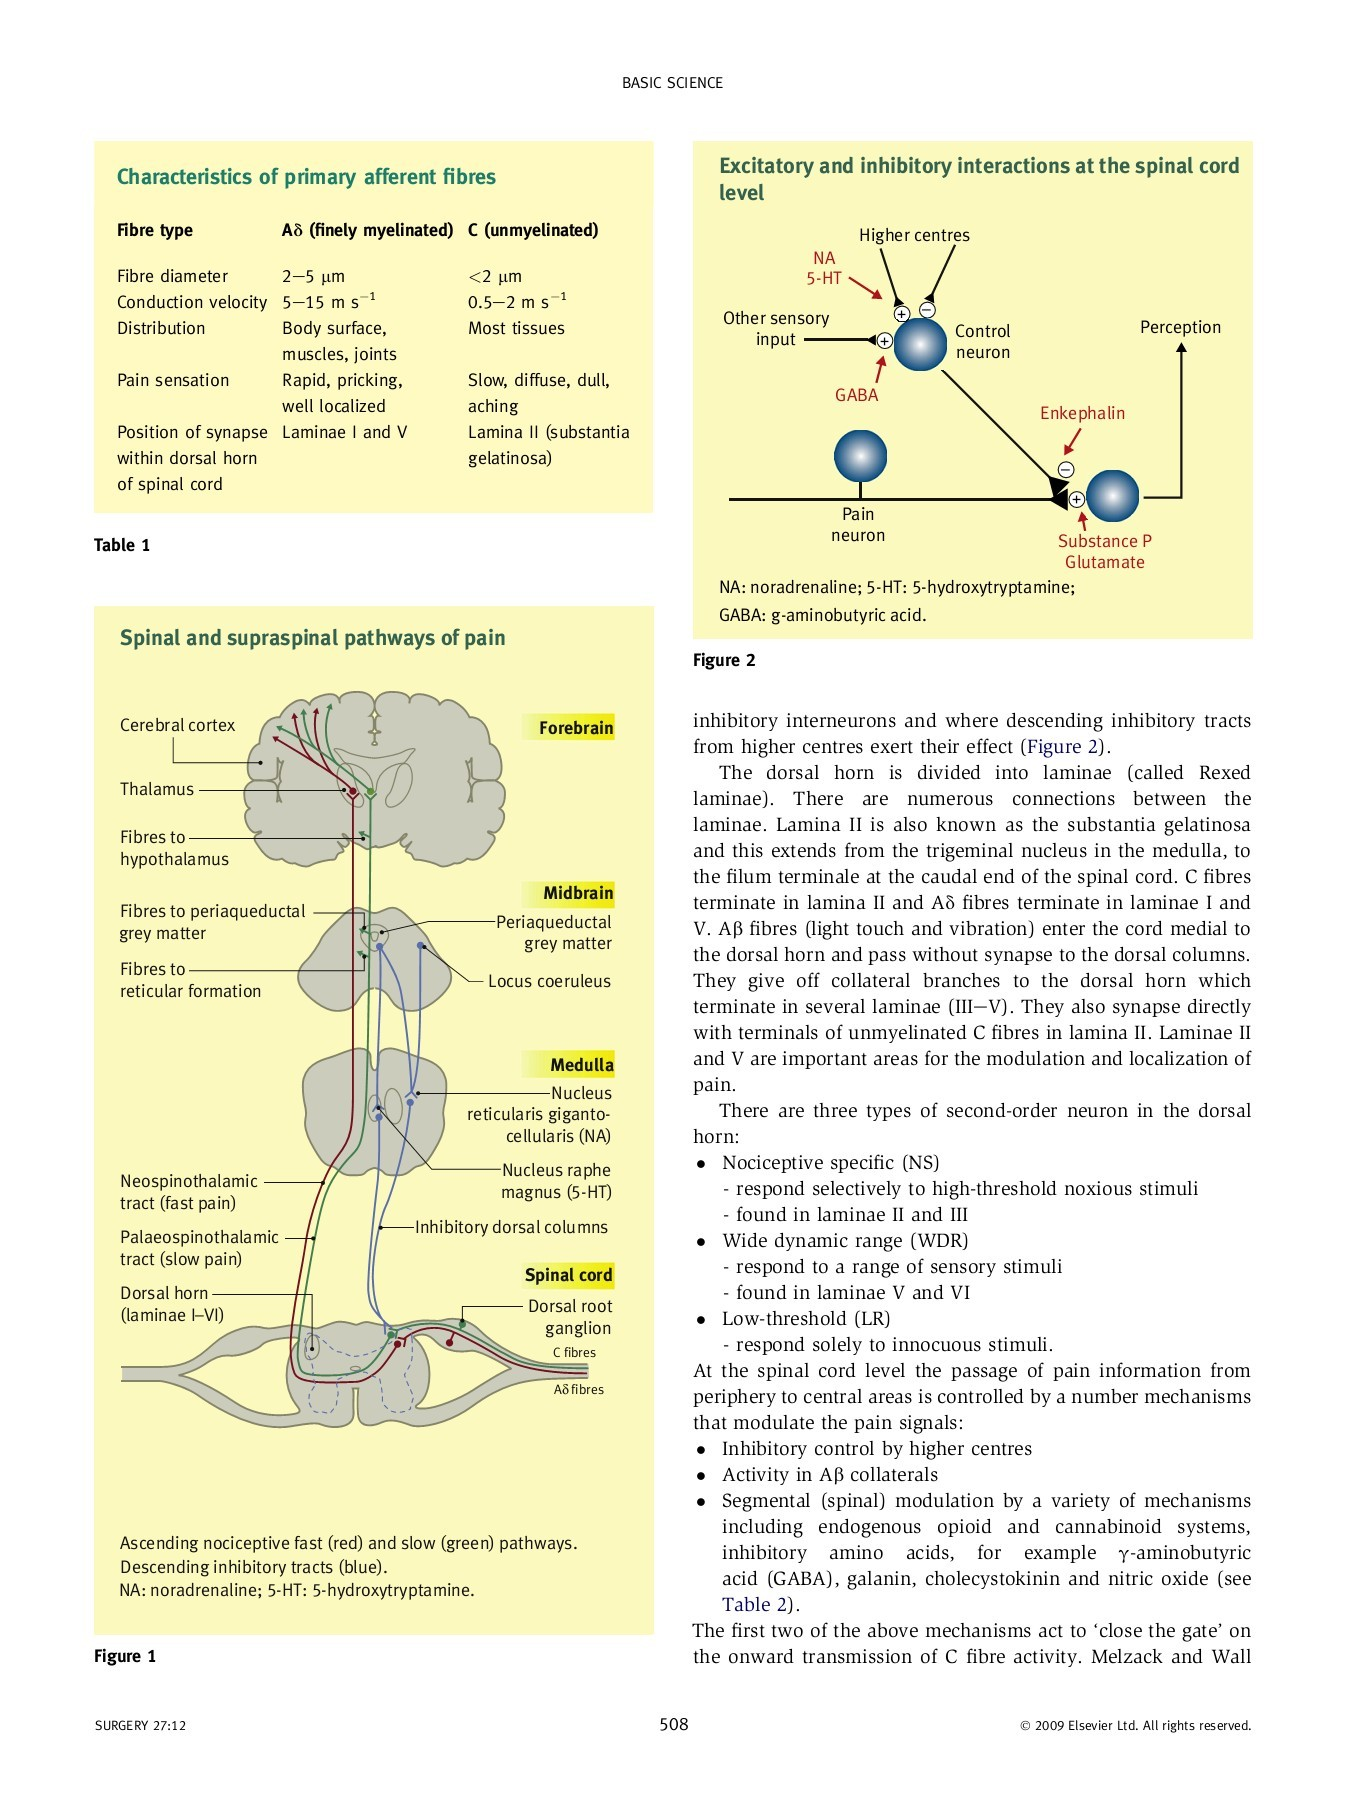 The anatomy and physiology of pain - UESC | FlipHTML5